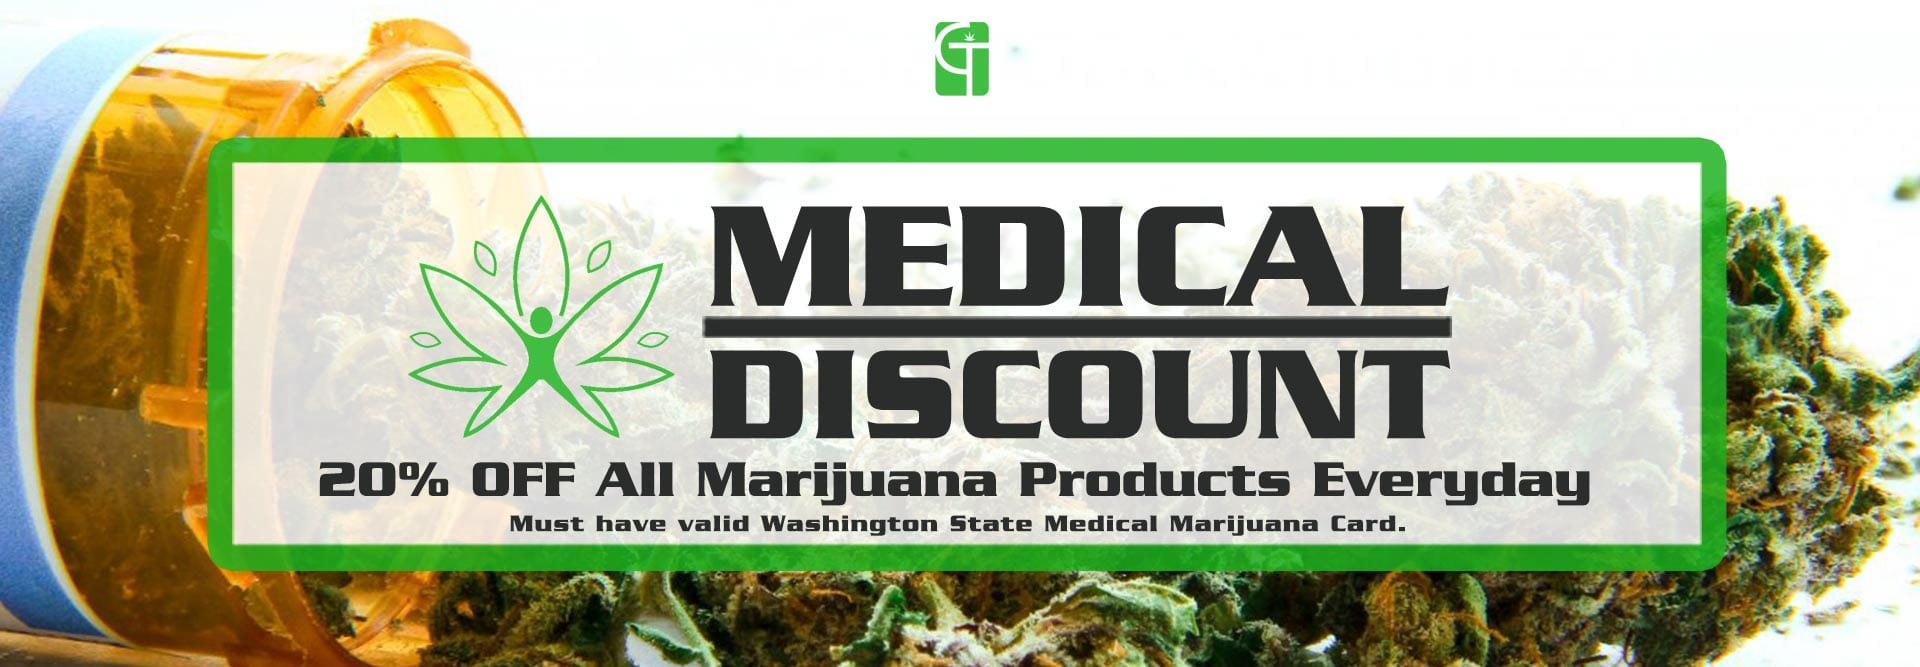 Medical-Discount-Green-Theory